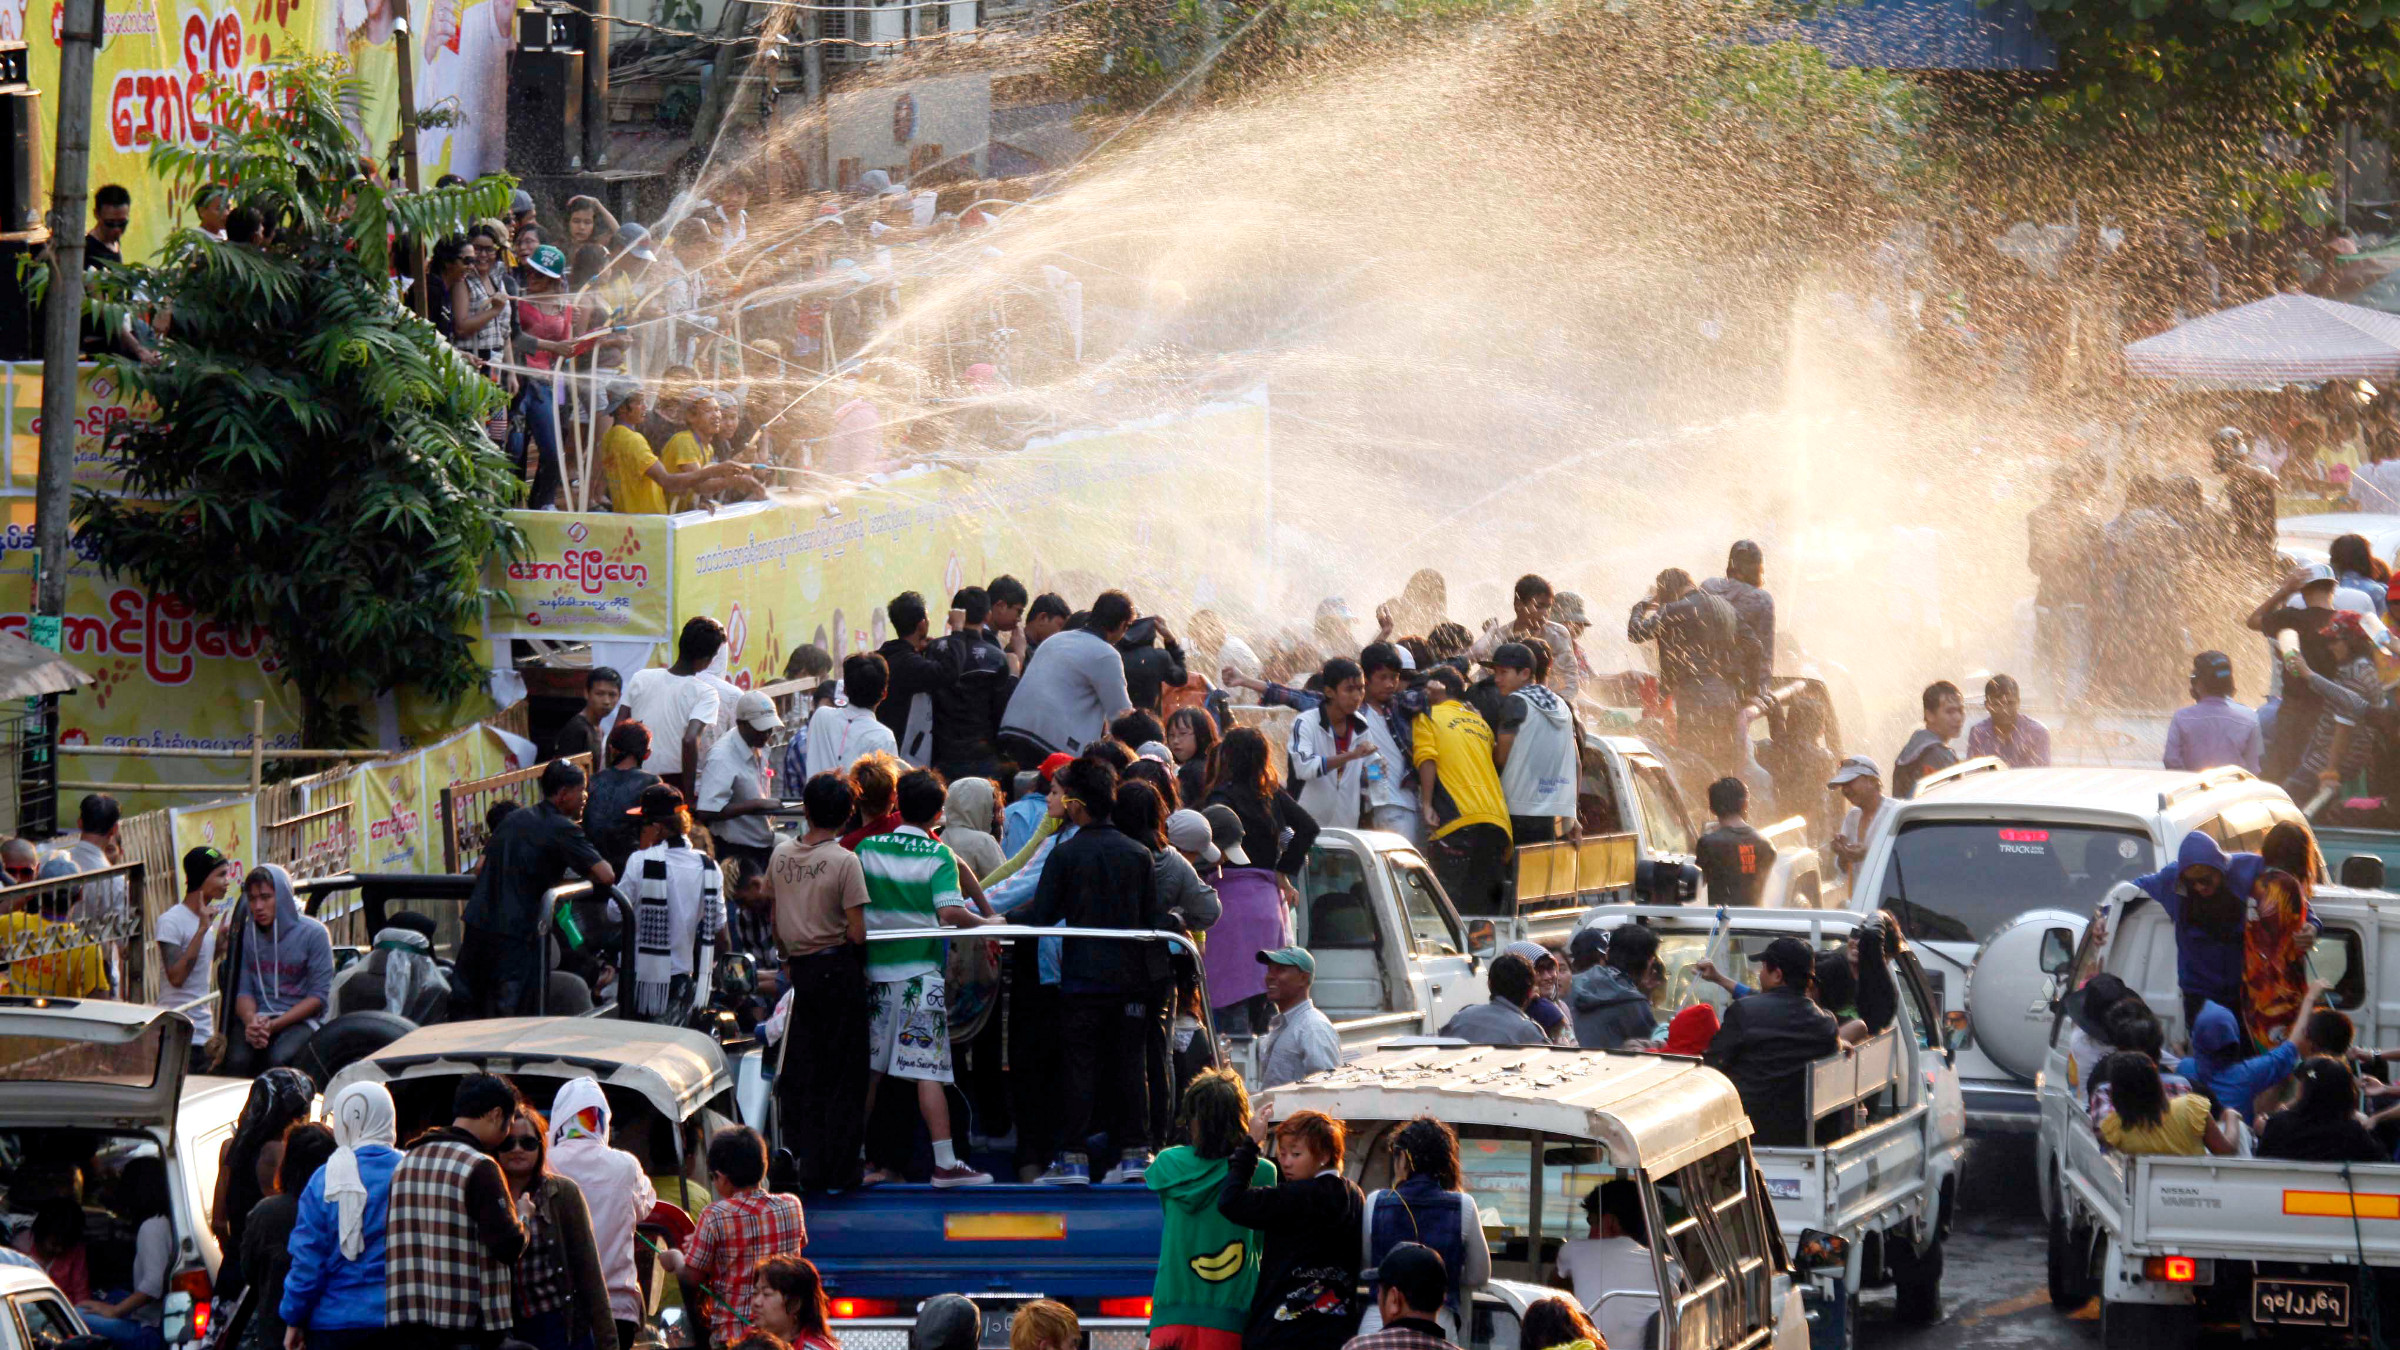 Vehicles carrying revelers line up towards a pavilion sprayed water during the traditional Thingyan celebrations in Yangon, Myanmar, Sunday, April 14, 2013. Myanmar celebrated its annual water festival, known as Thingyan, from Saturday, marking the start of the New Year according to the traditional Buddhist calendar.